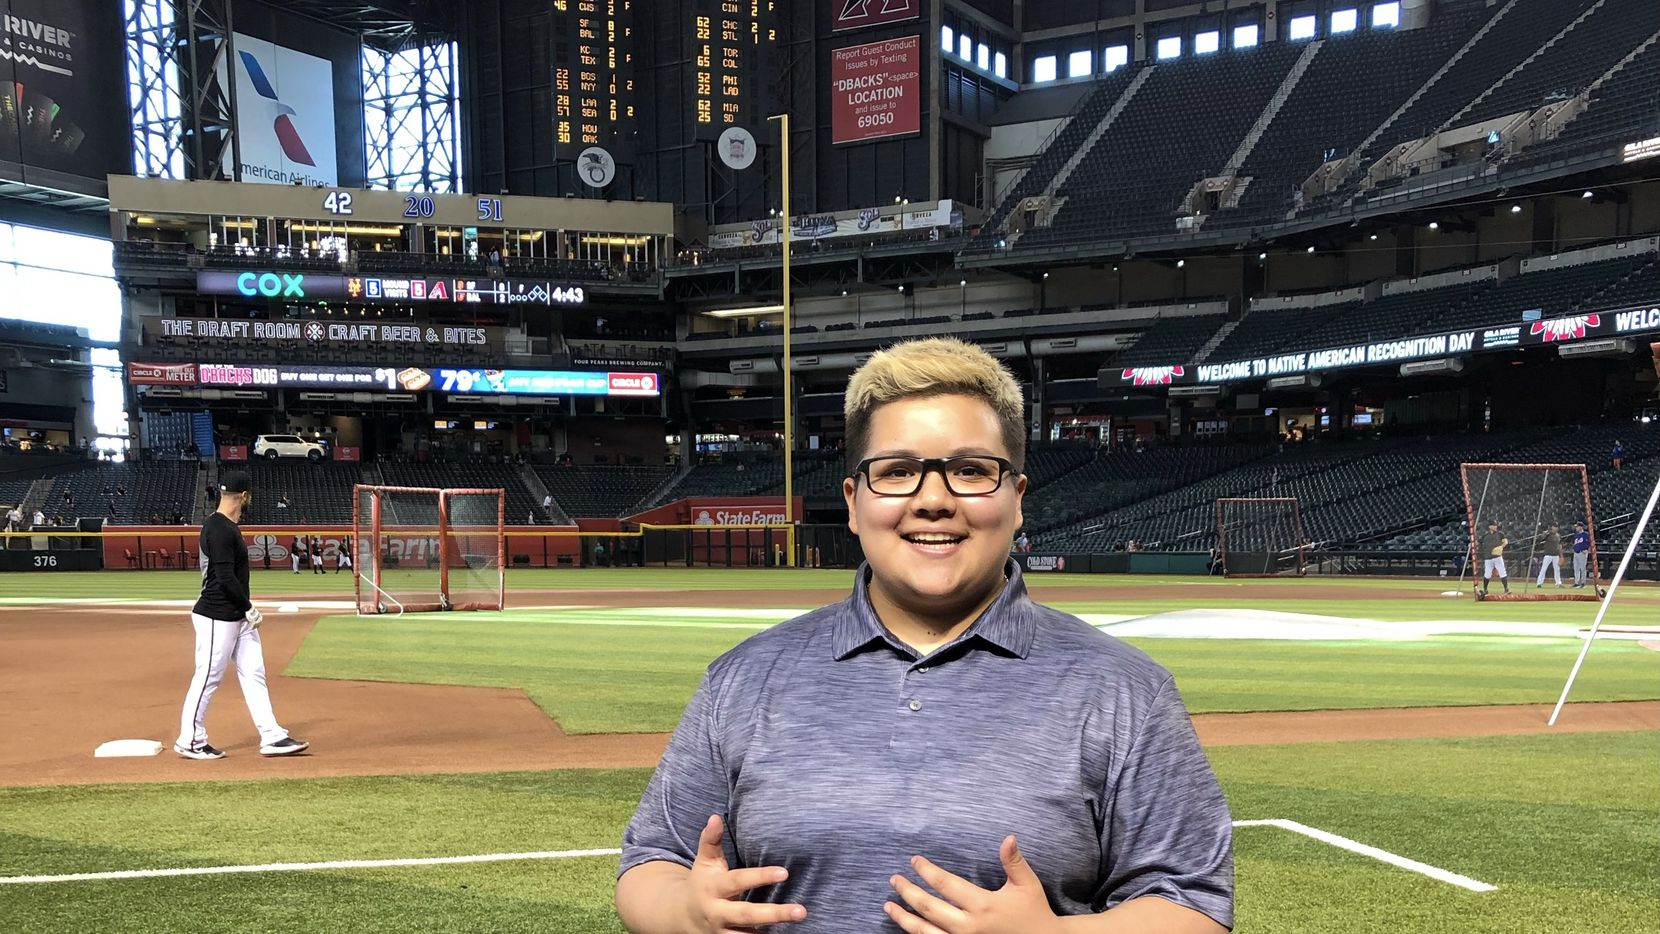 Arianna Vedia is a SportsDay intern at The Dallas Morning News. She is shown at Chase Field on June 1, 2019.